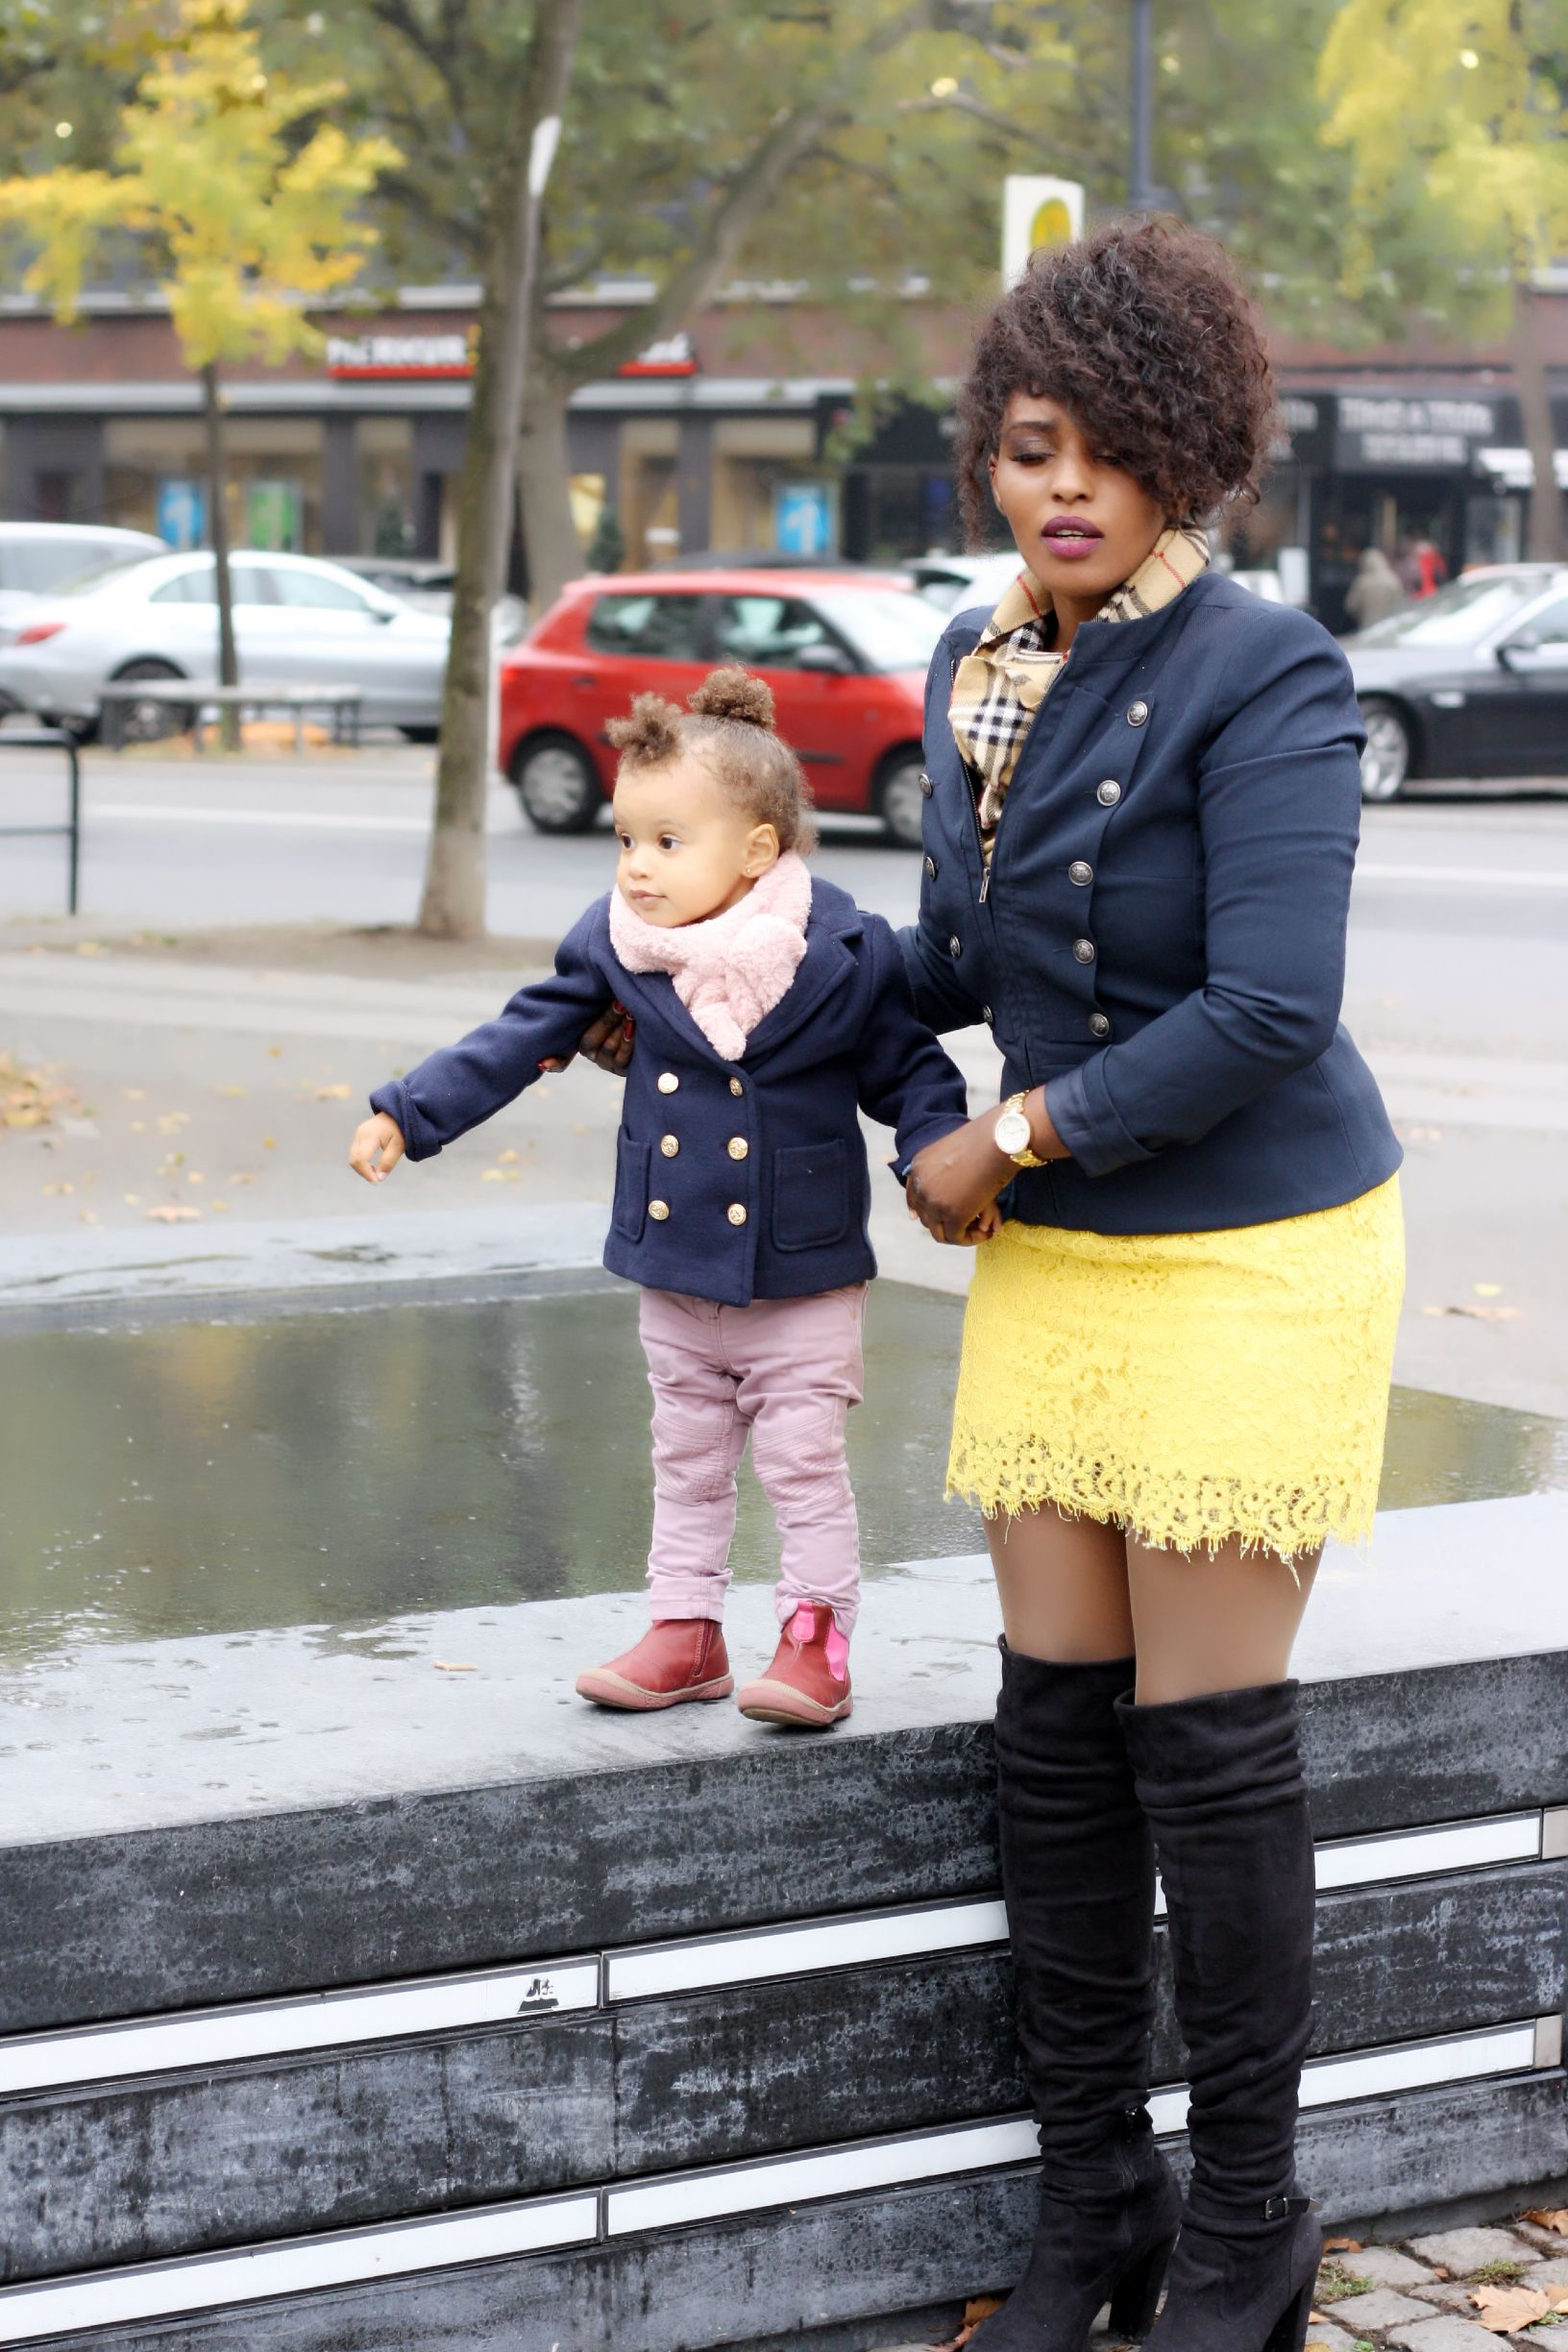 Dress a baby in clothes that look like mini down versions of adult